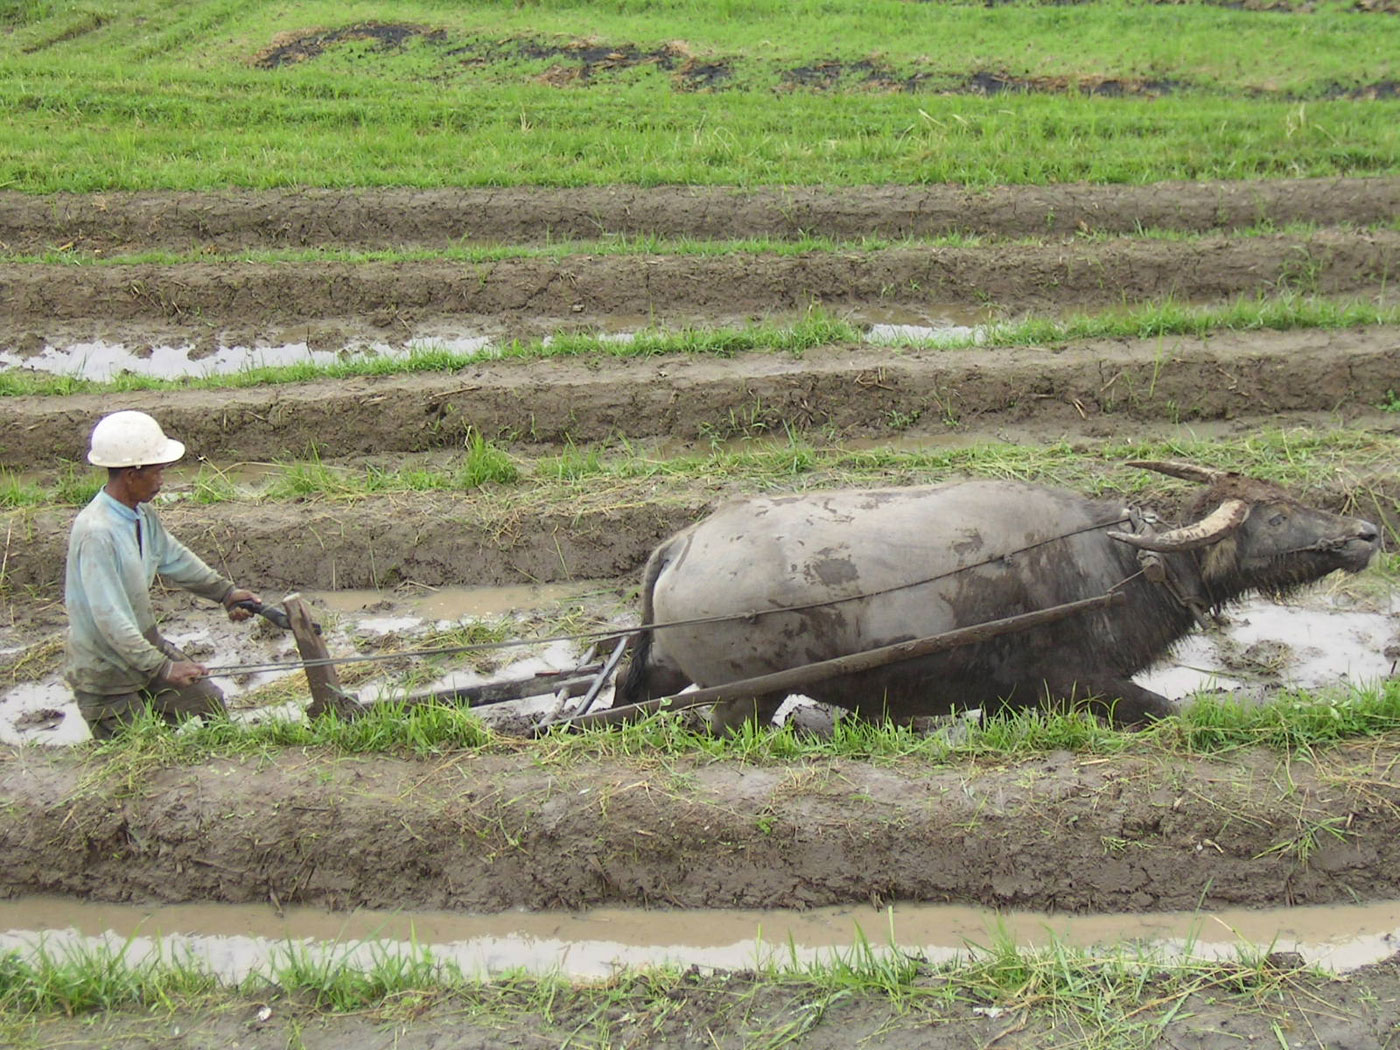 File:Farming-on-Indonesia.jpg - Wikipedia, the free encyclopedia